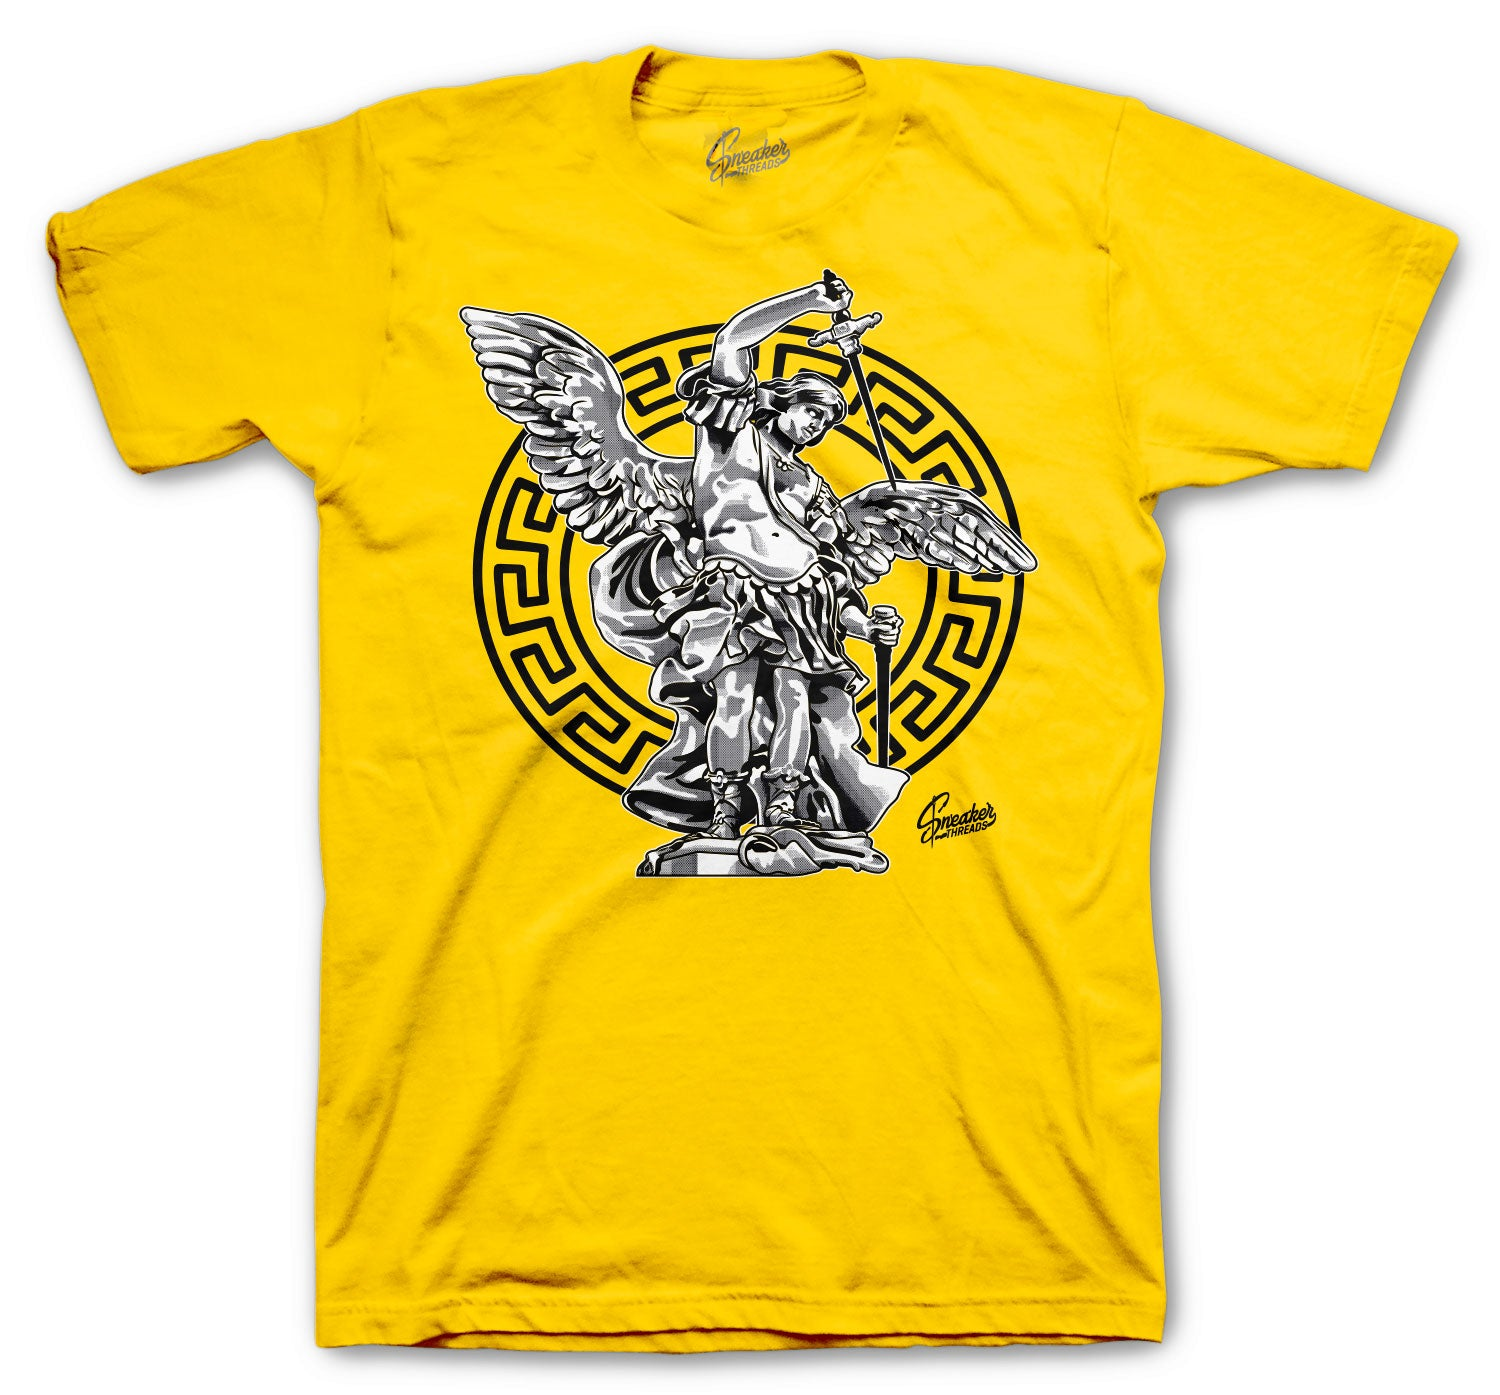 University Gold Jordan 12 sneaker collection matching with tees for guys